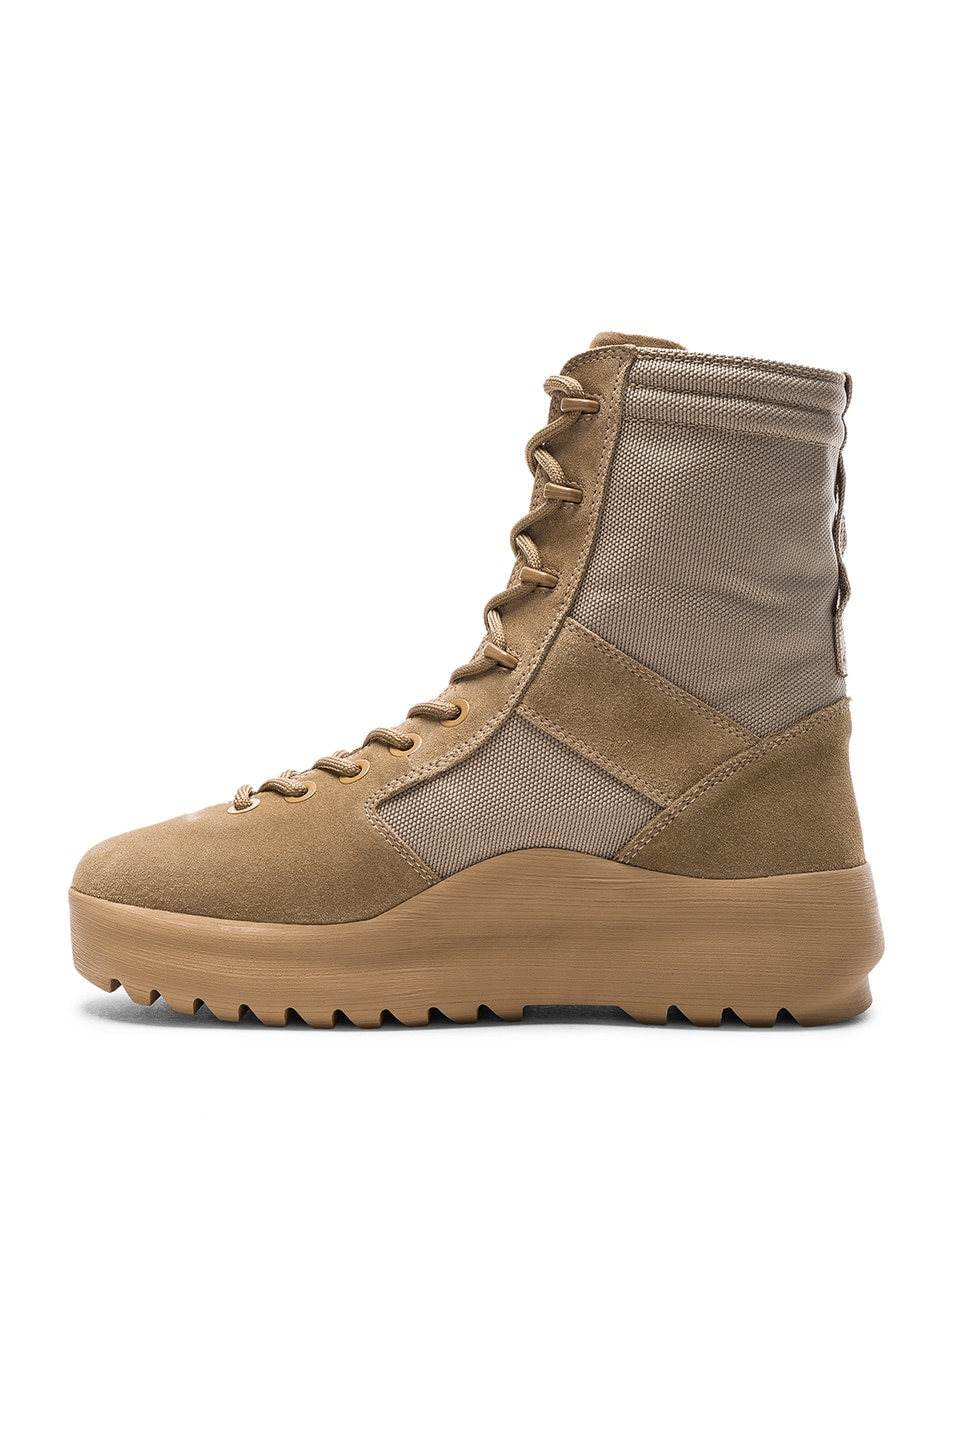 c877a8fab01a3 Image 5 of YEEZY Season 3 Military Boots in Rock